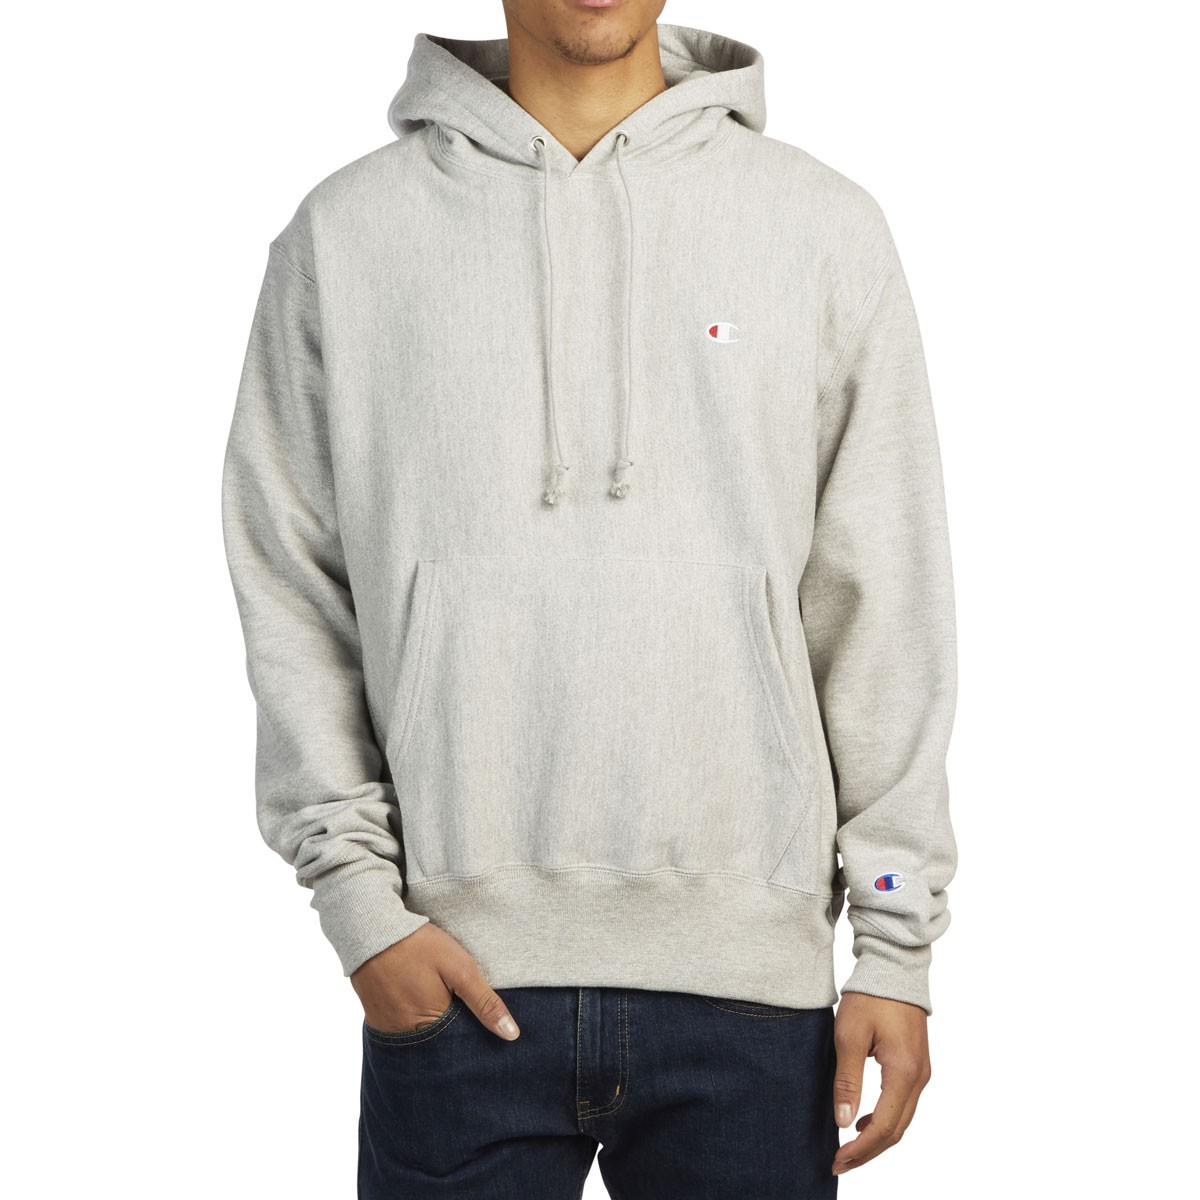 8735fc68fa87 Champion Reverse Weave Pullover Hoodie - Oxford Grey